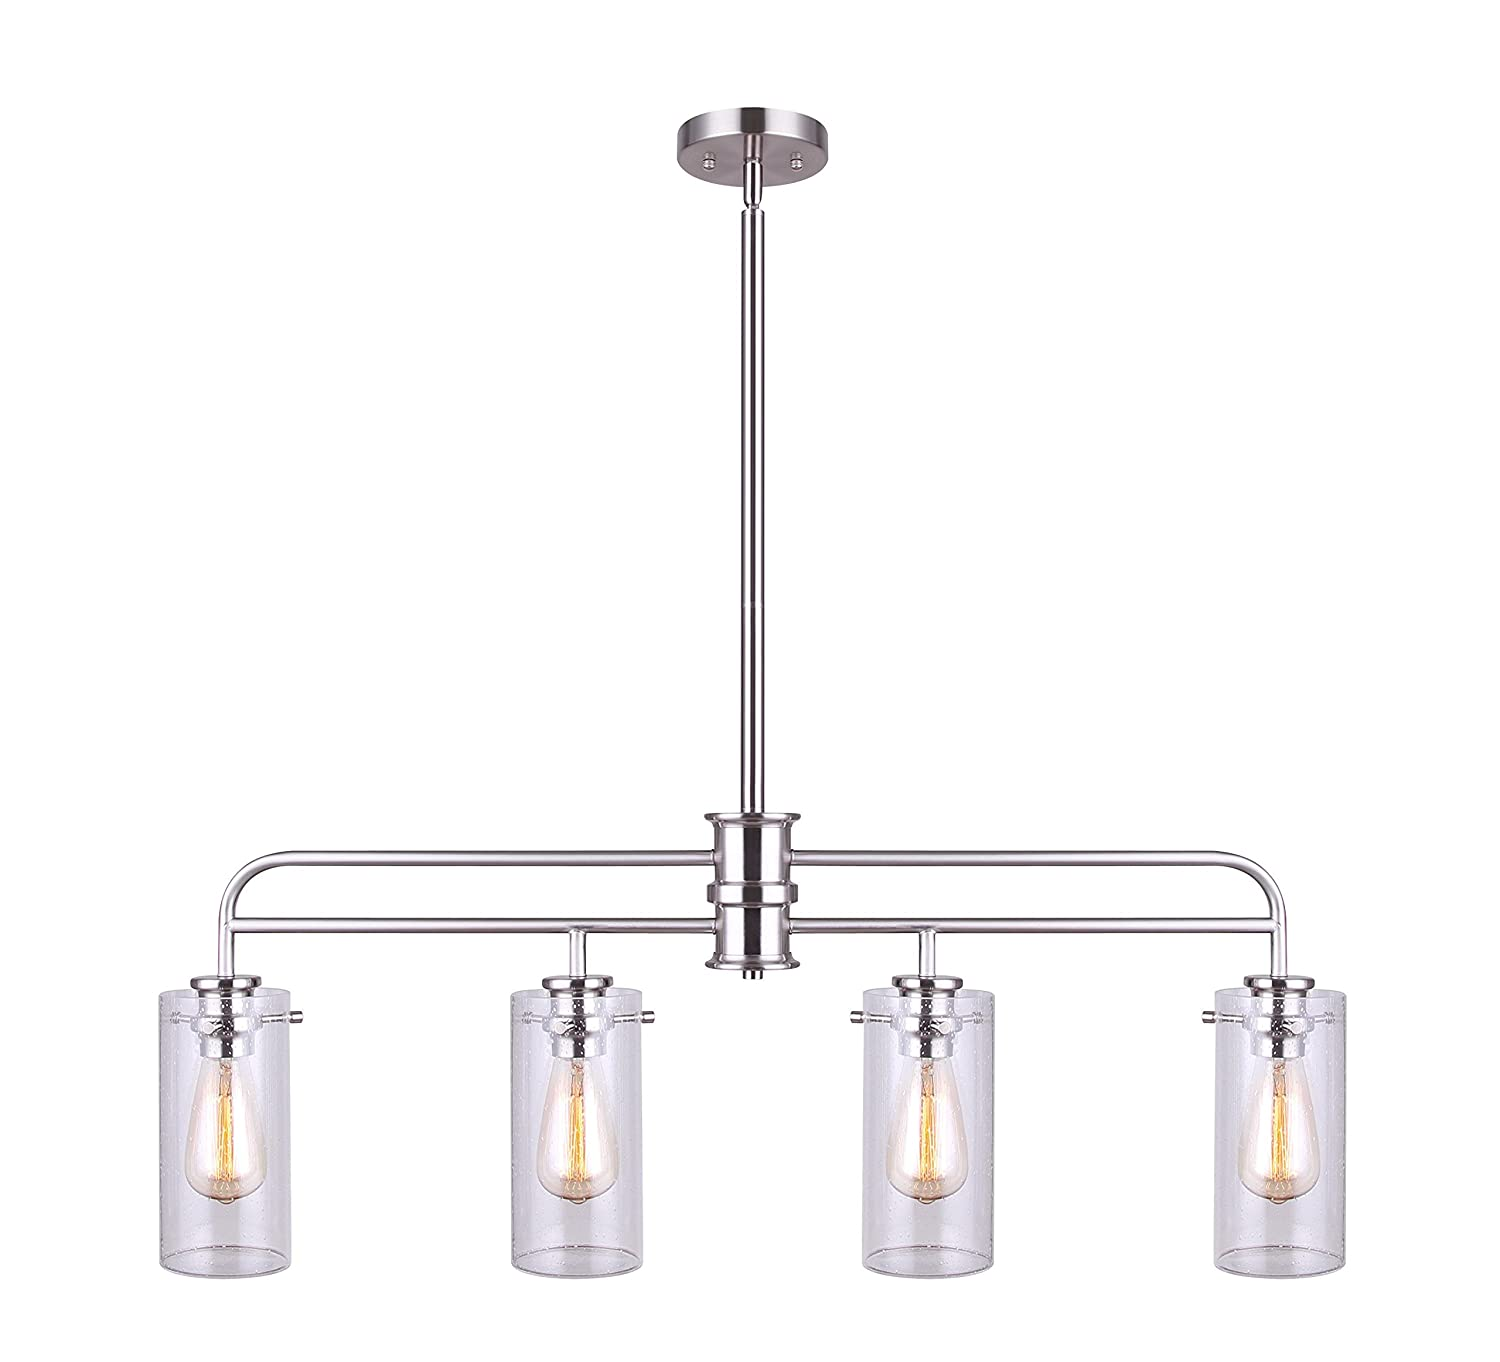 Canram IPL679A04BN Albany 4 Light Pendant with Brushed Nickel Finish